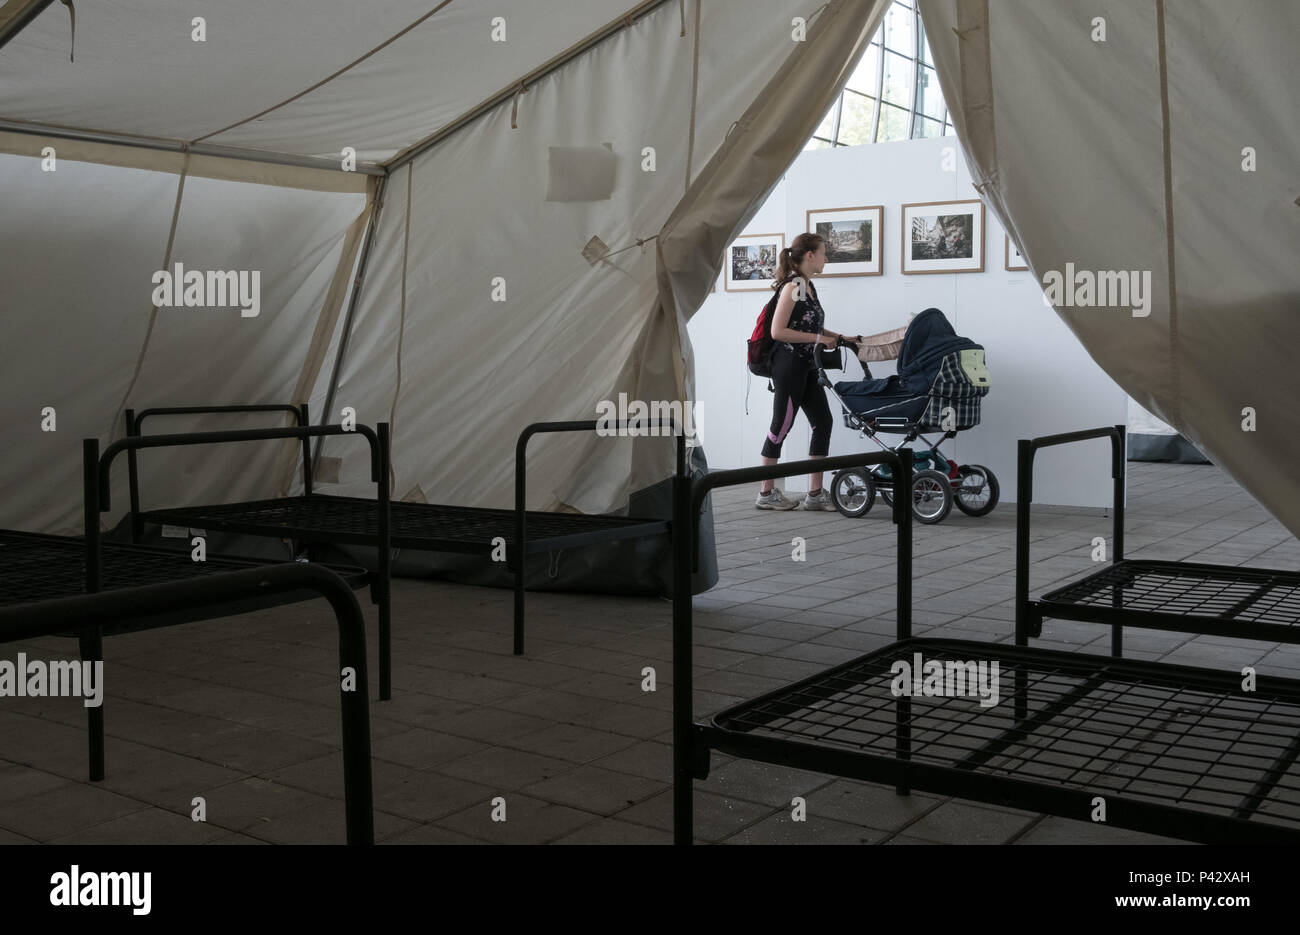 Hanover, Germany. 20th June, 2018. A visitor looks at photographs on the subject of flight, which are exhibited in connection with the Lumix Festival. A few months ago, the same pavillon was used to house refugees. Credit: Jochen Lübke/dpa/Alamy Live News - Stock Image